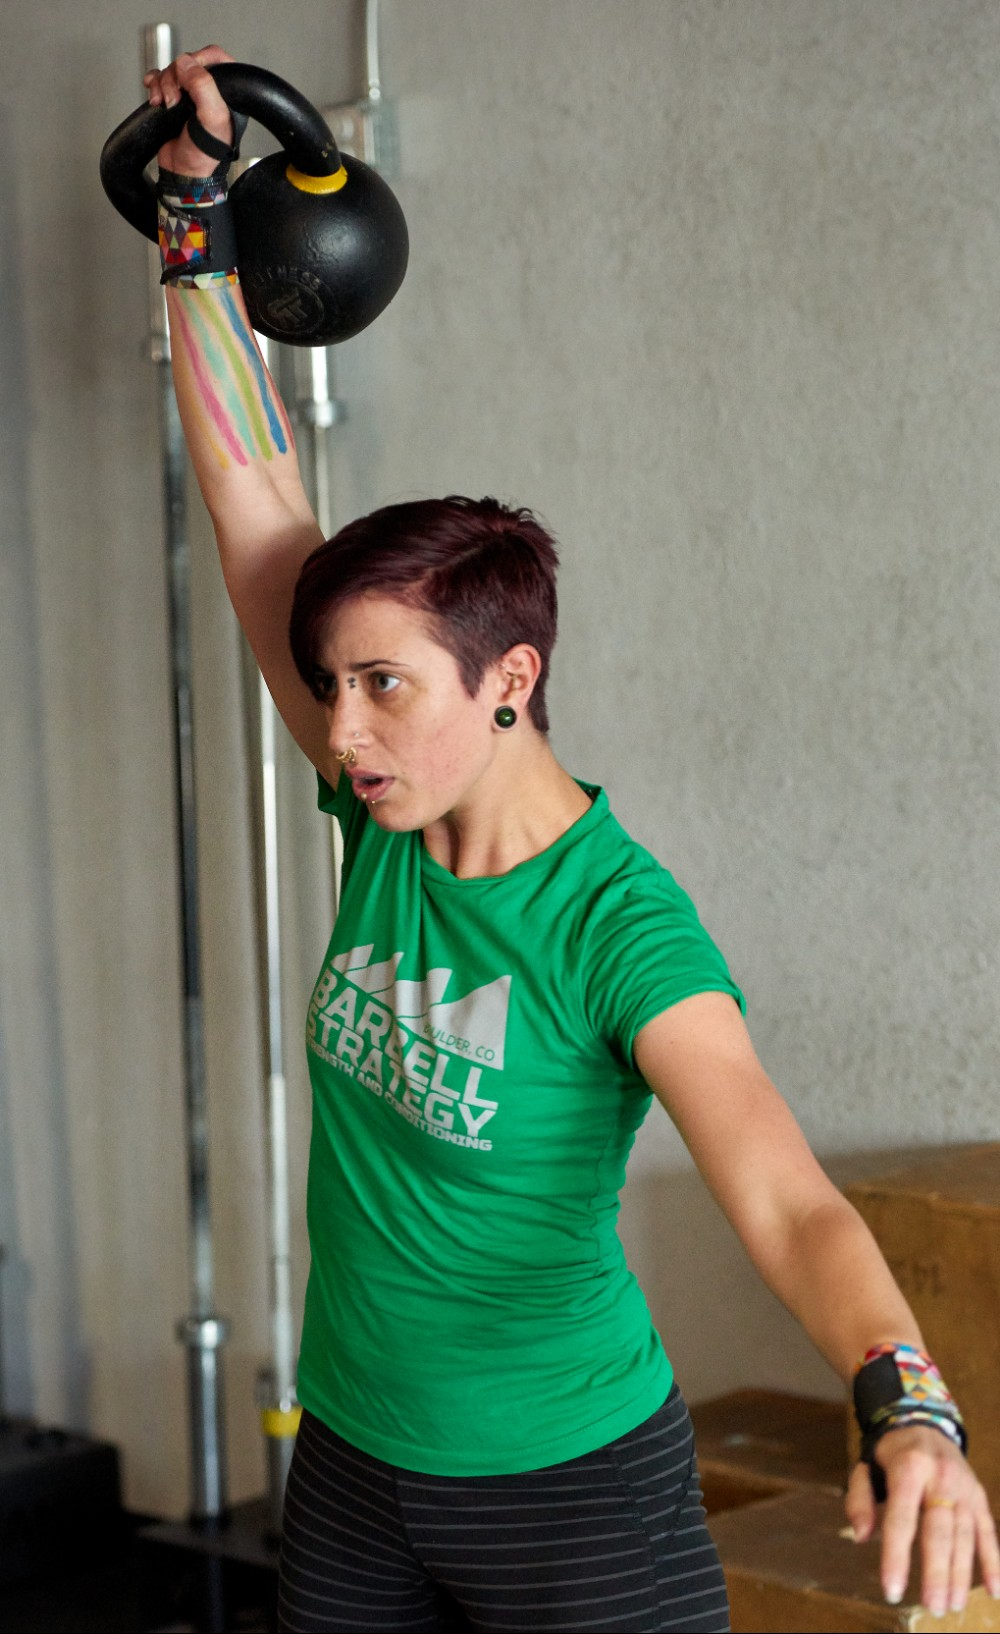 Sarah testing out an experimental kettlebell protocol